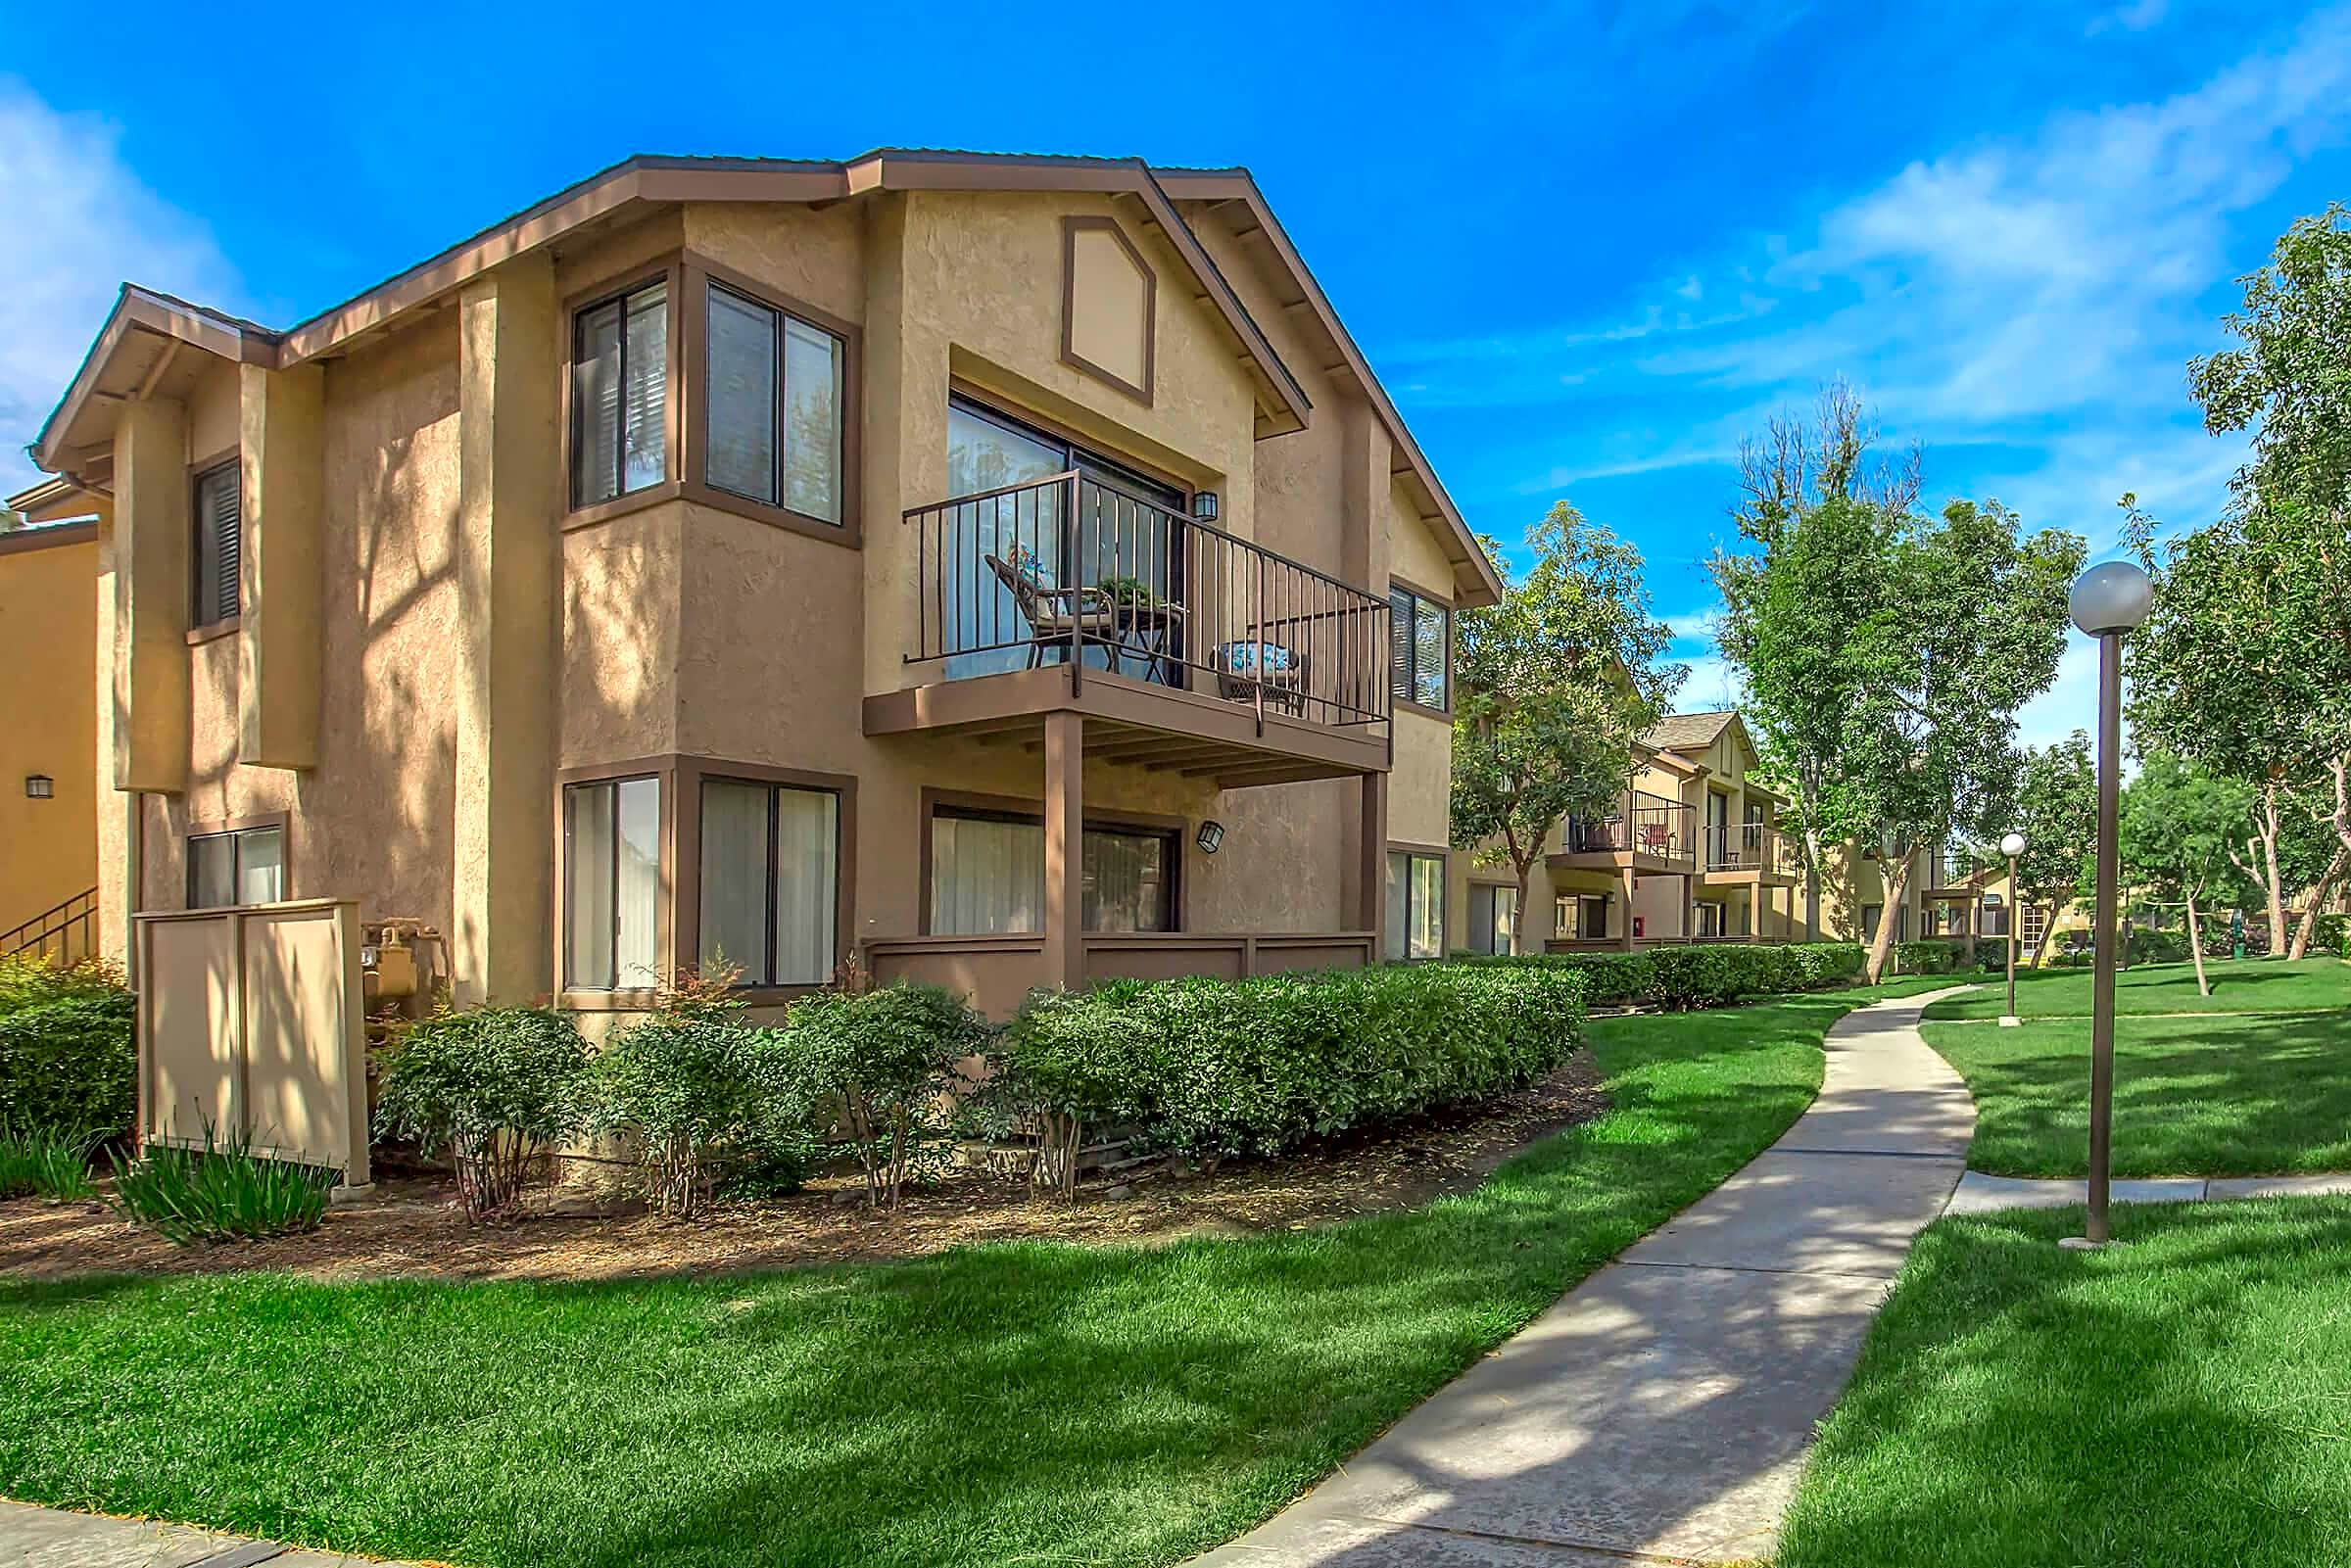 Apartments Near Pomona Mountain Springs Apartment Homes for Pomona College Students in Claremont, CA